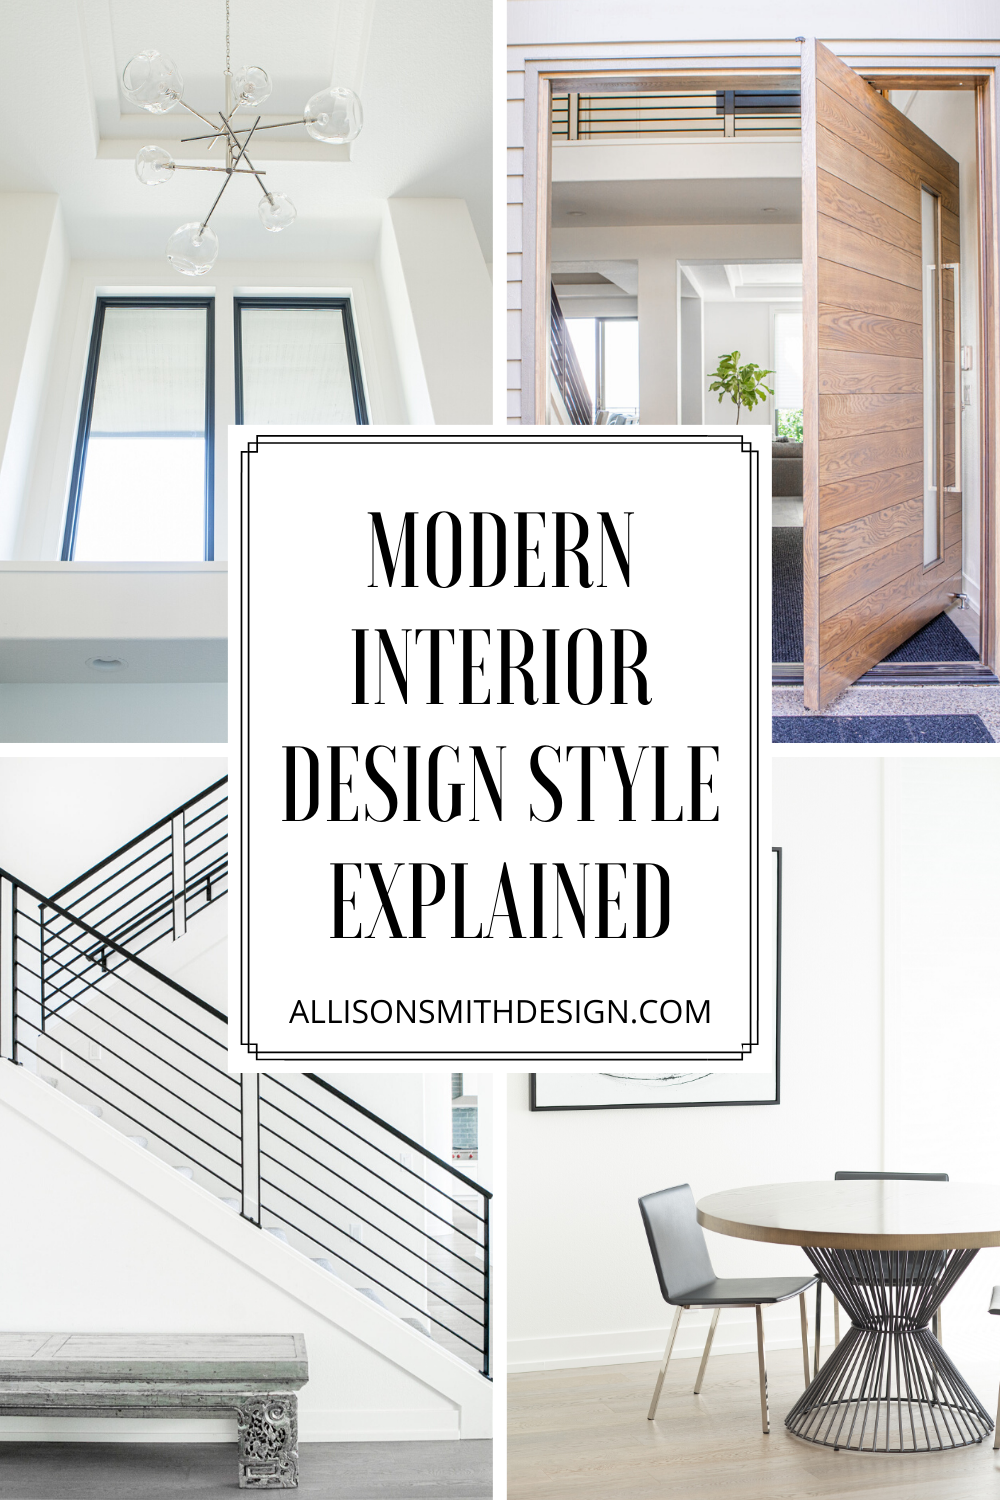 Big fans of modern home decor believe it is the perfect blend of simple details, natural elements, and neutral colors. Learn what makes modern design such a popular look! by Allison Smith Design in Portland, OR #moderndesign #moderndecor #modernstyle